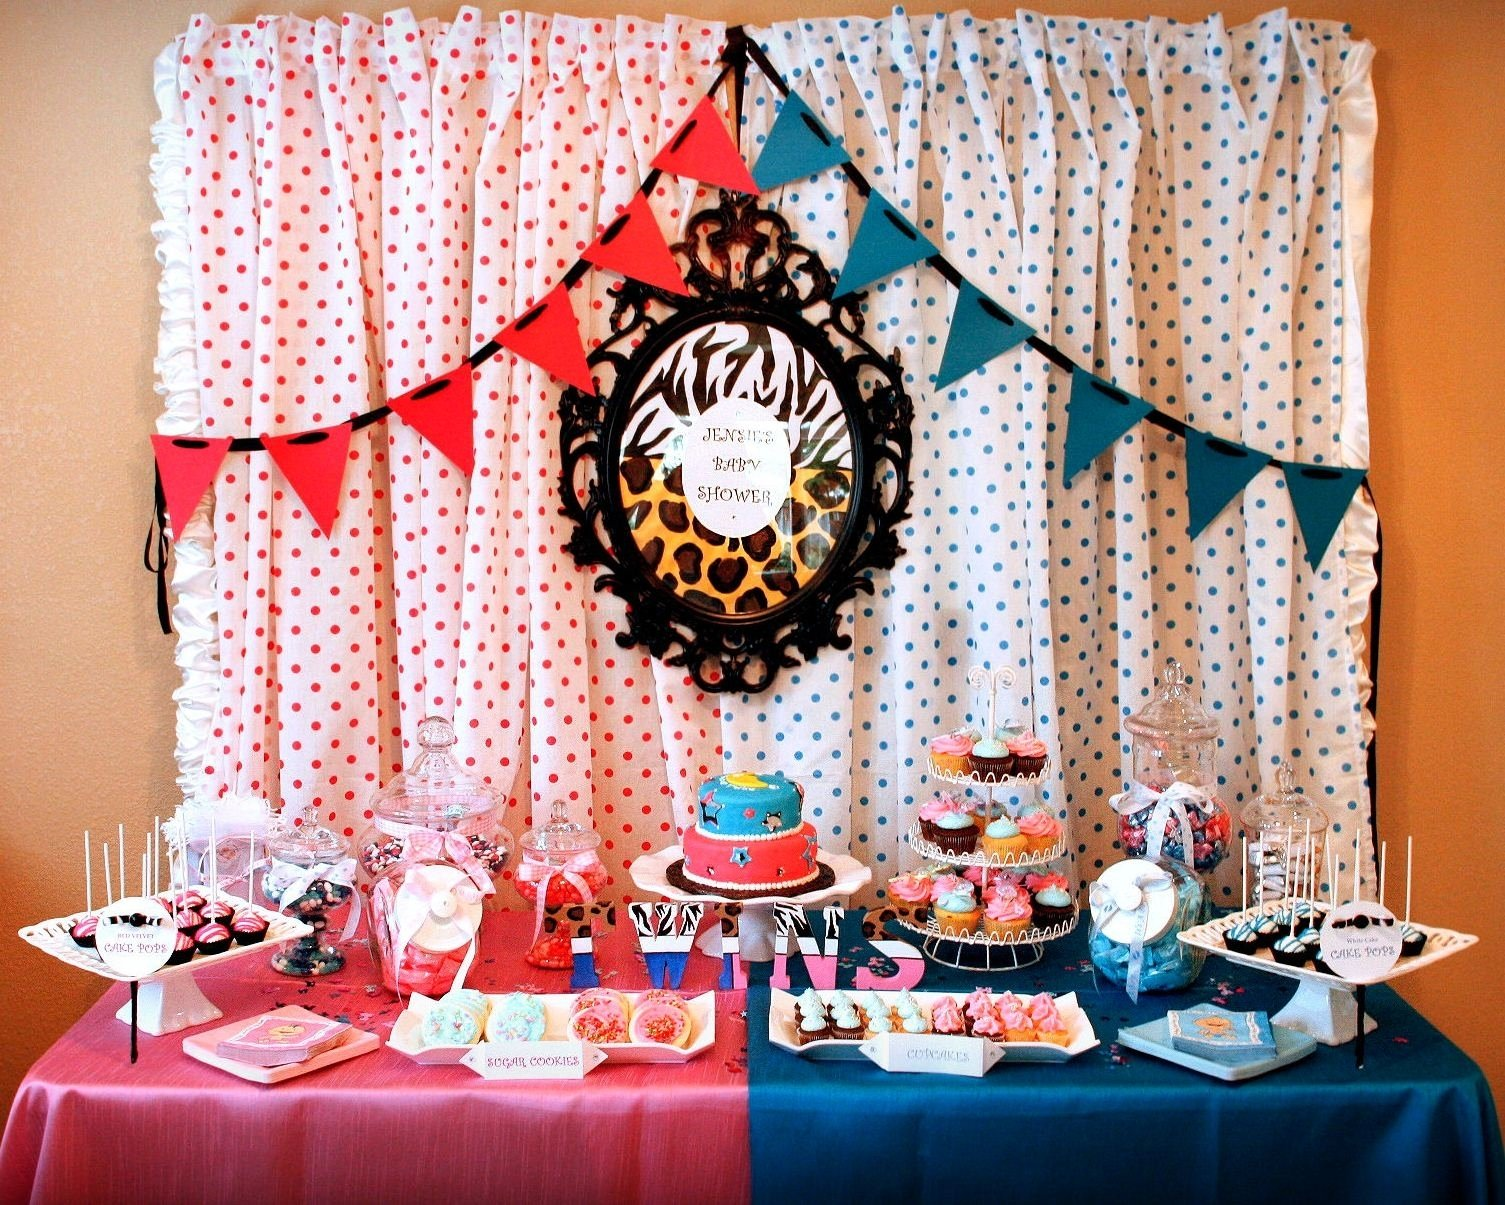 10 Cute Baby Shower Ideas For Twin Boys baby shower ideas for twins boy and girl imposing theme gift 2